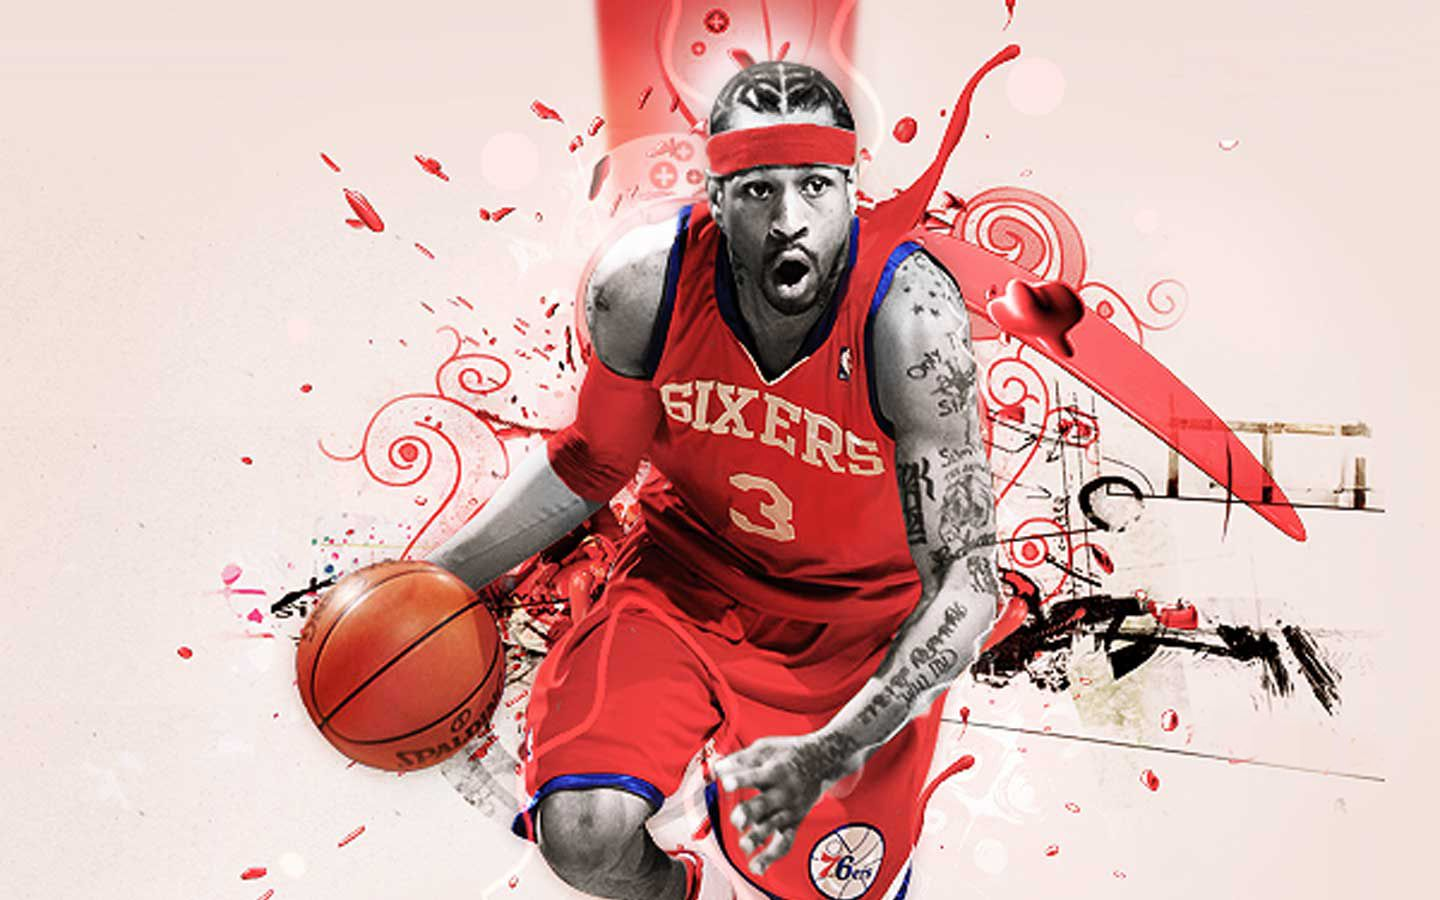 Get The Latest Hd And Mobile Nba: Allen Iverson Wallpapers : Find Best Latest Allen Iverson